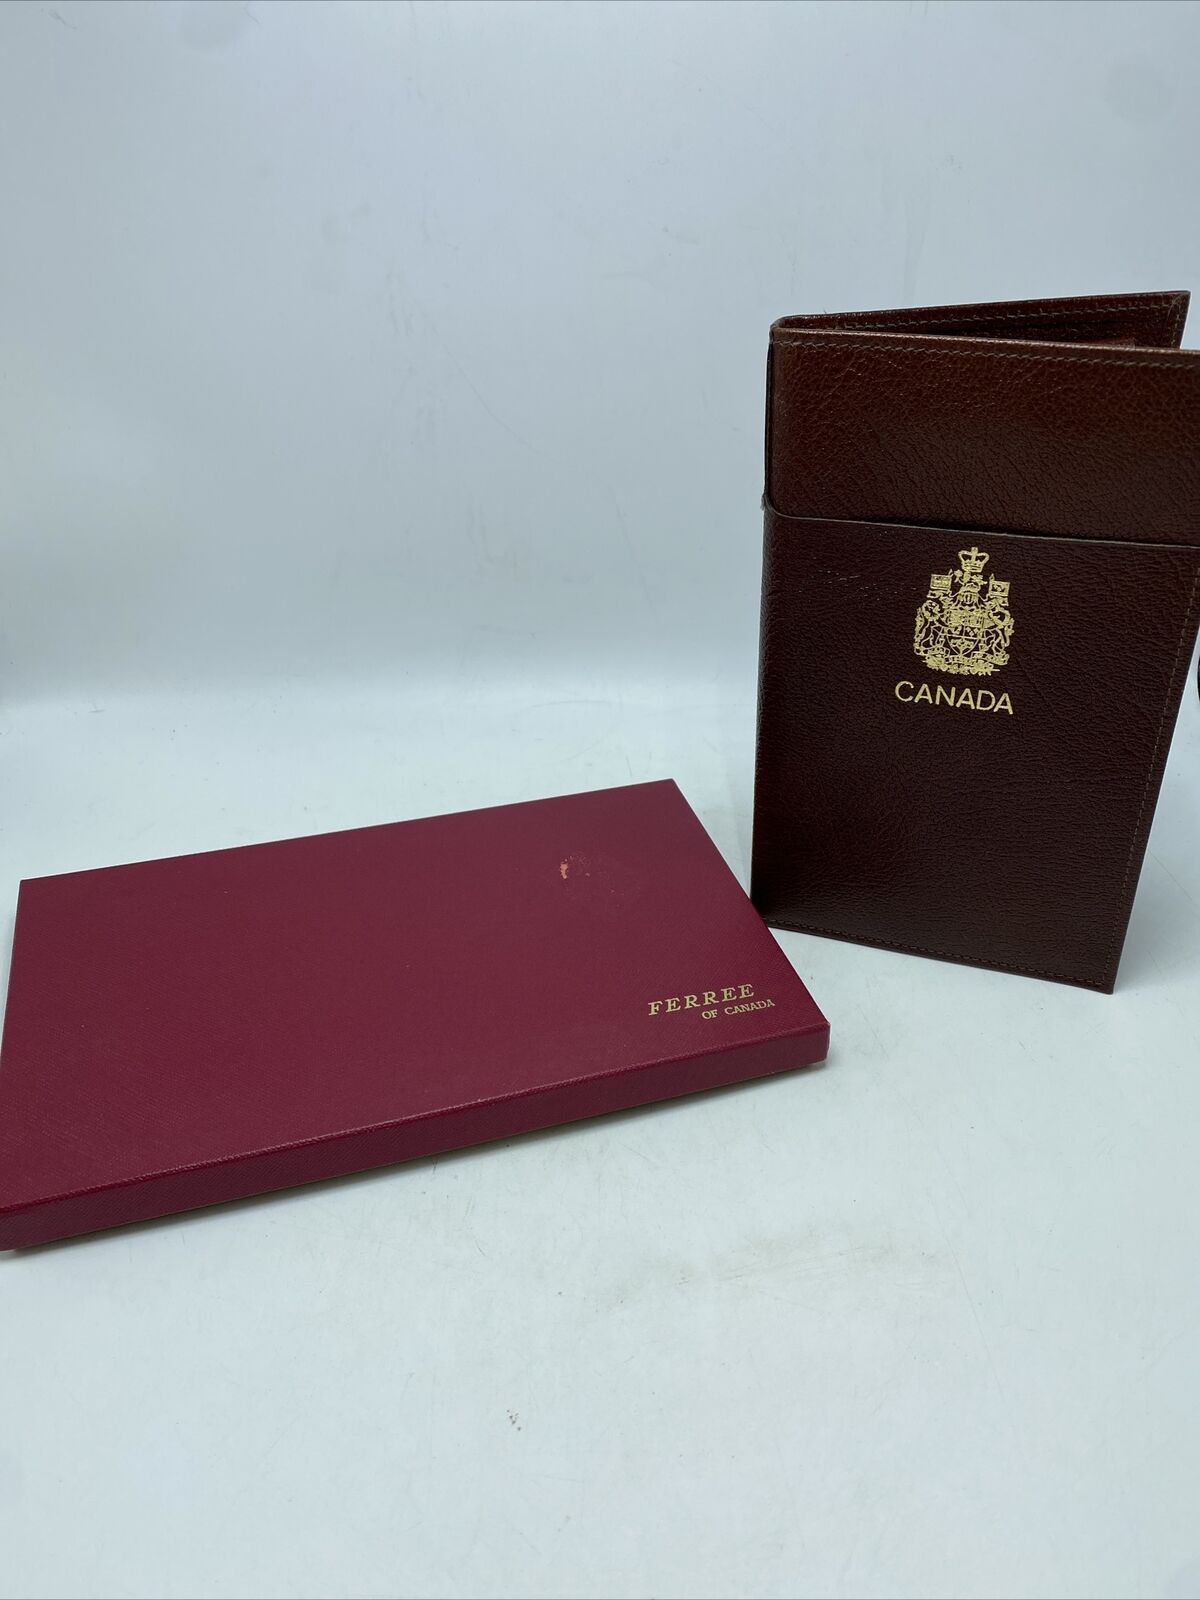 Ferree Of Canada Leather Travel Wallet Brown Gold